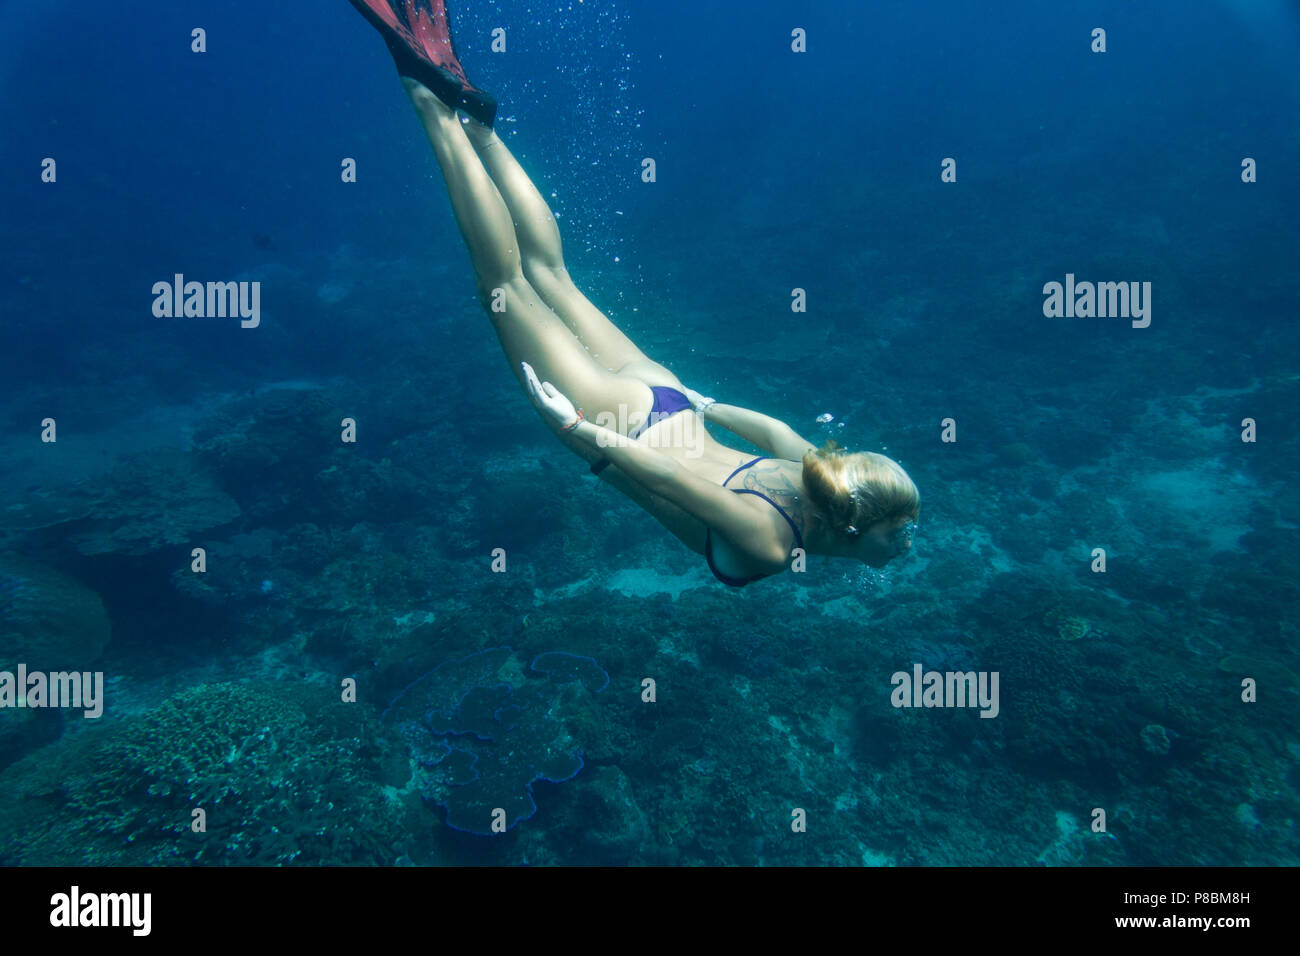 underwater pic of young woman in bikini and fins diving in ocean alone - Stock Image